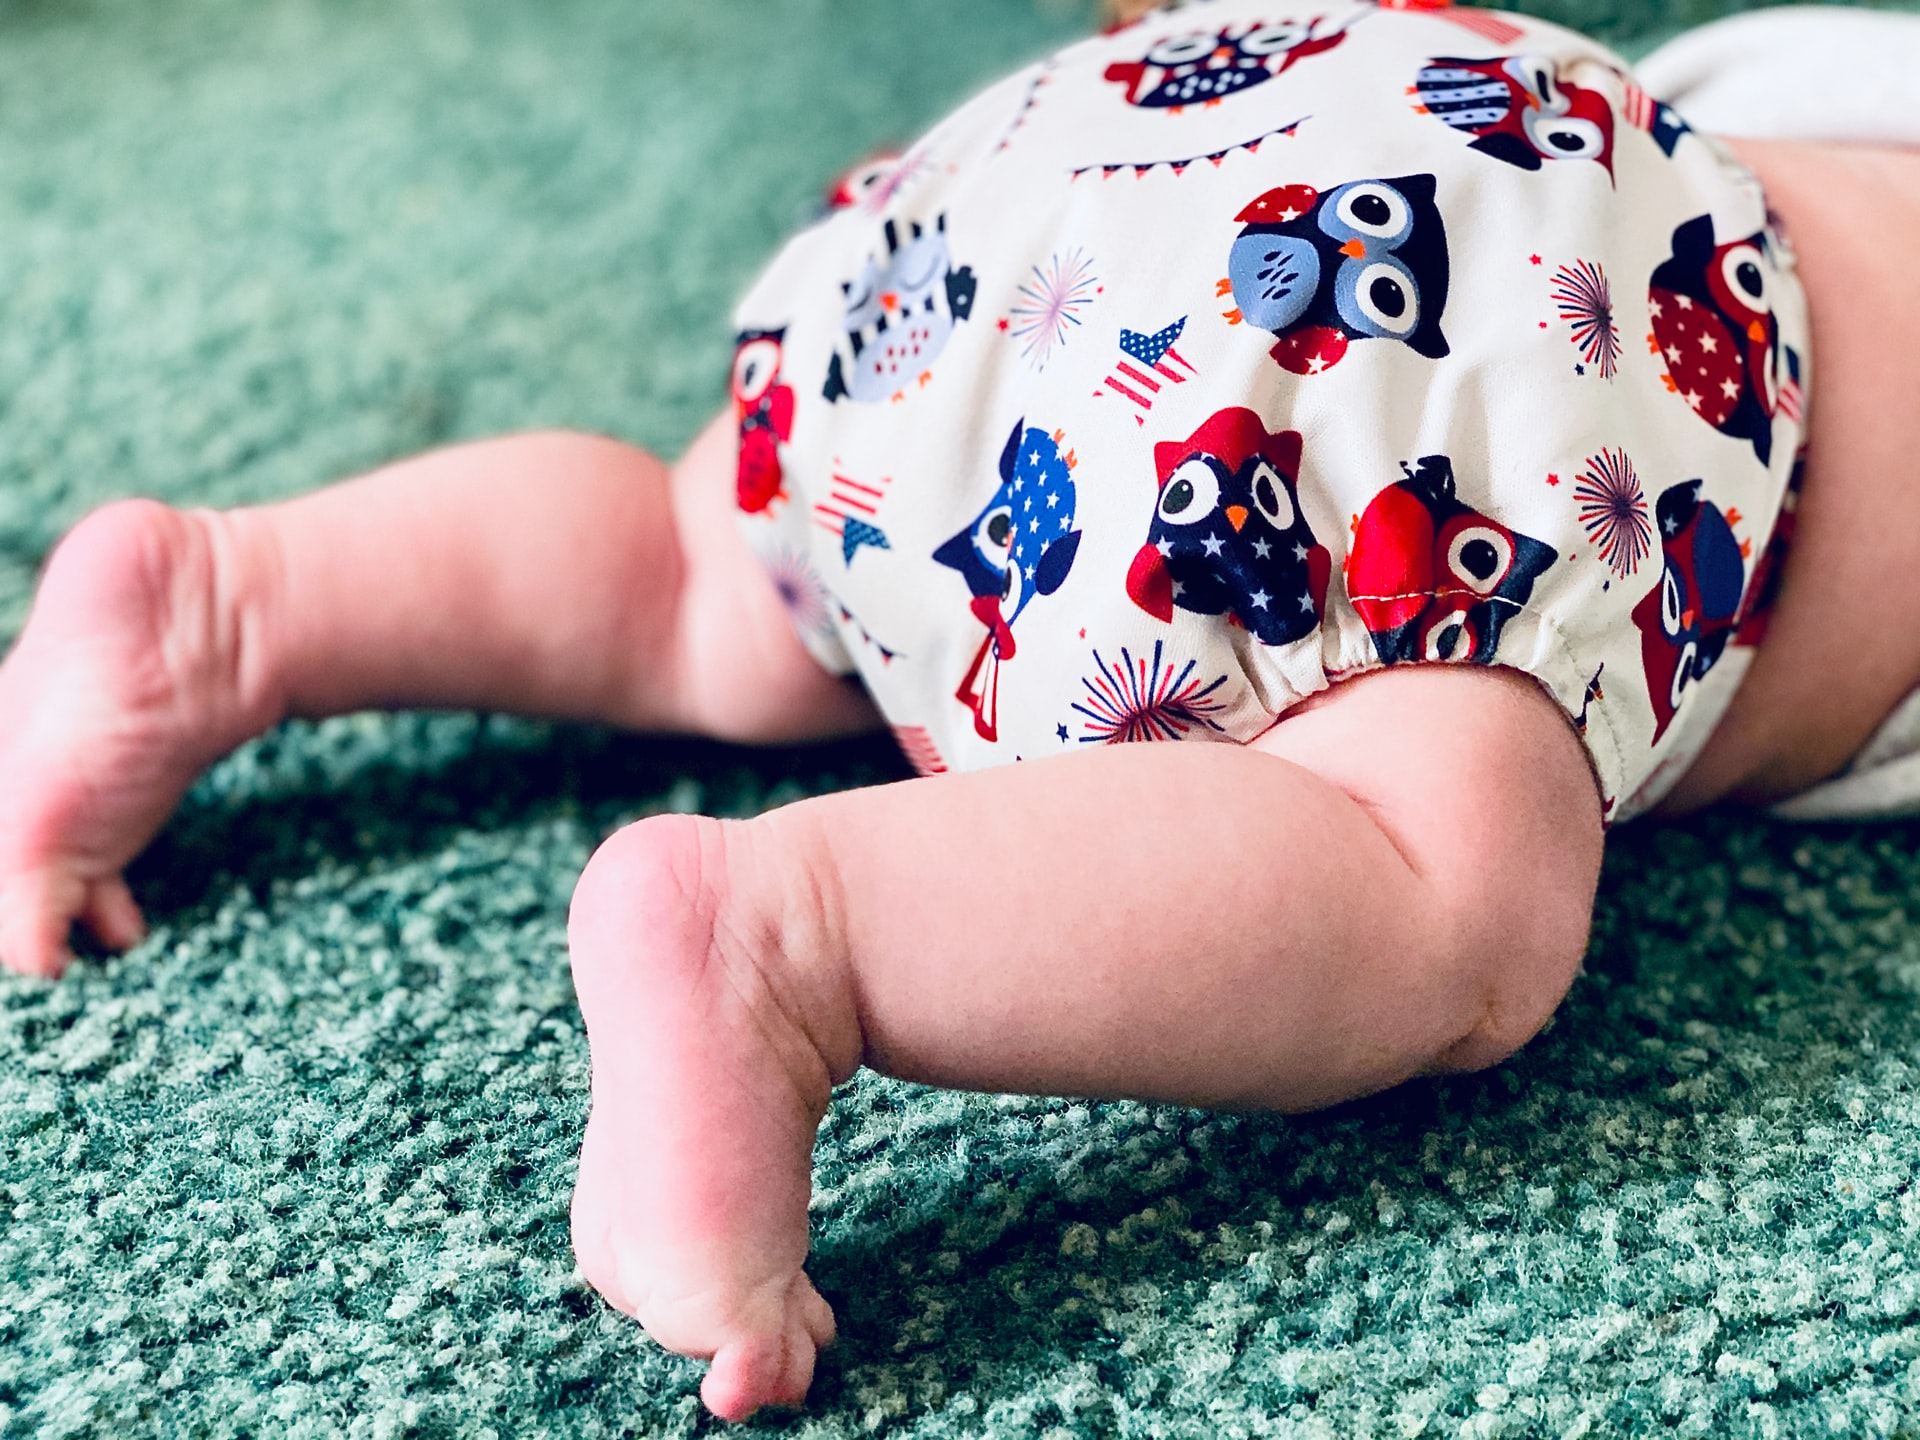 Cash back to reduce nappy waste